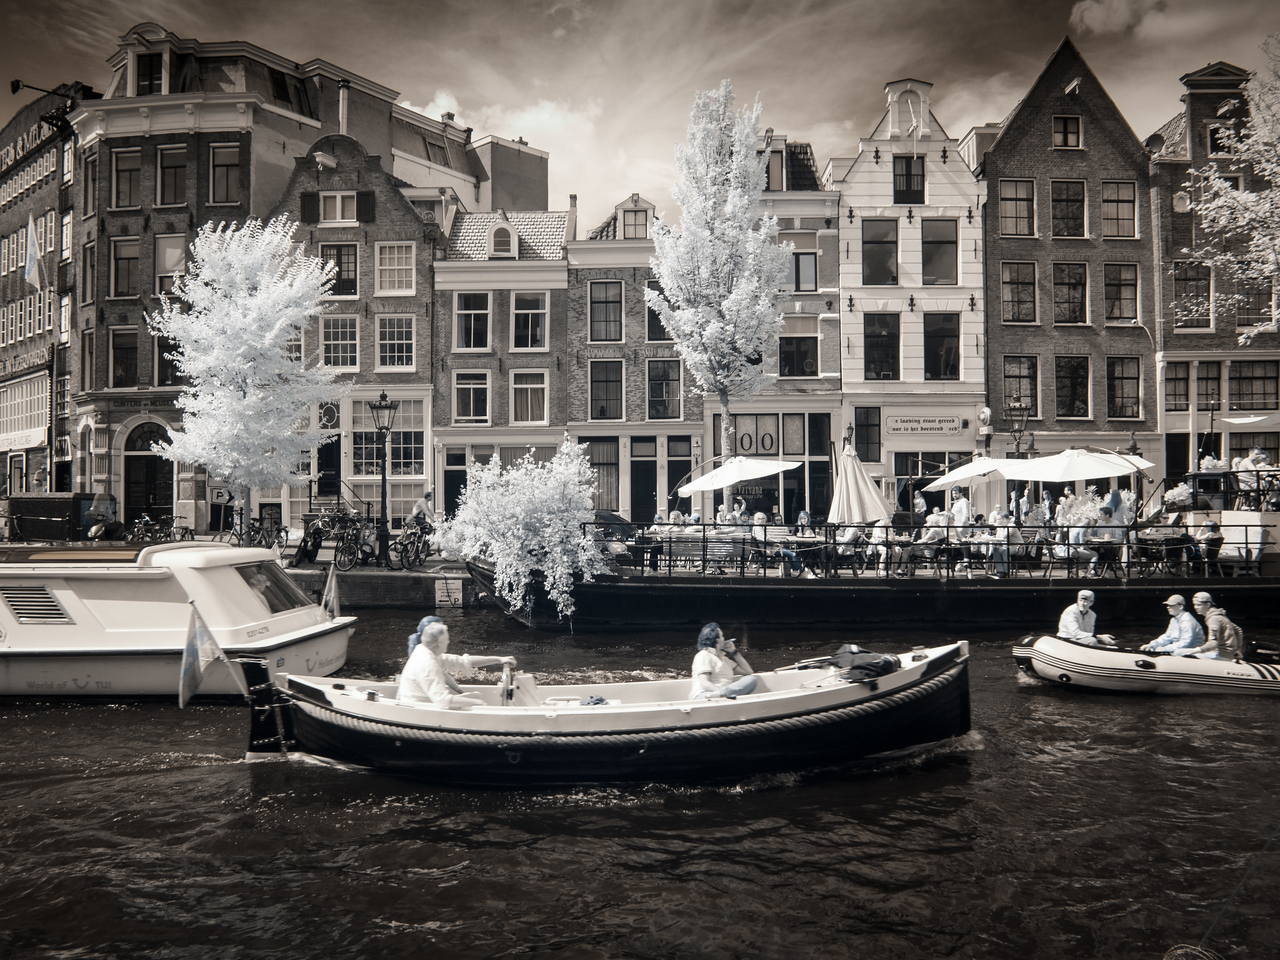 Boat traffic and canal houses on Prinsengracht.